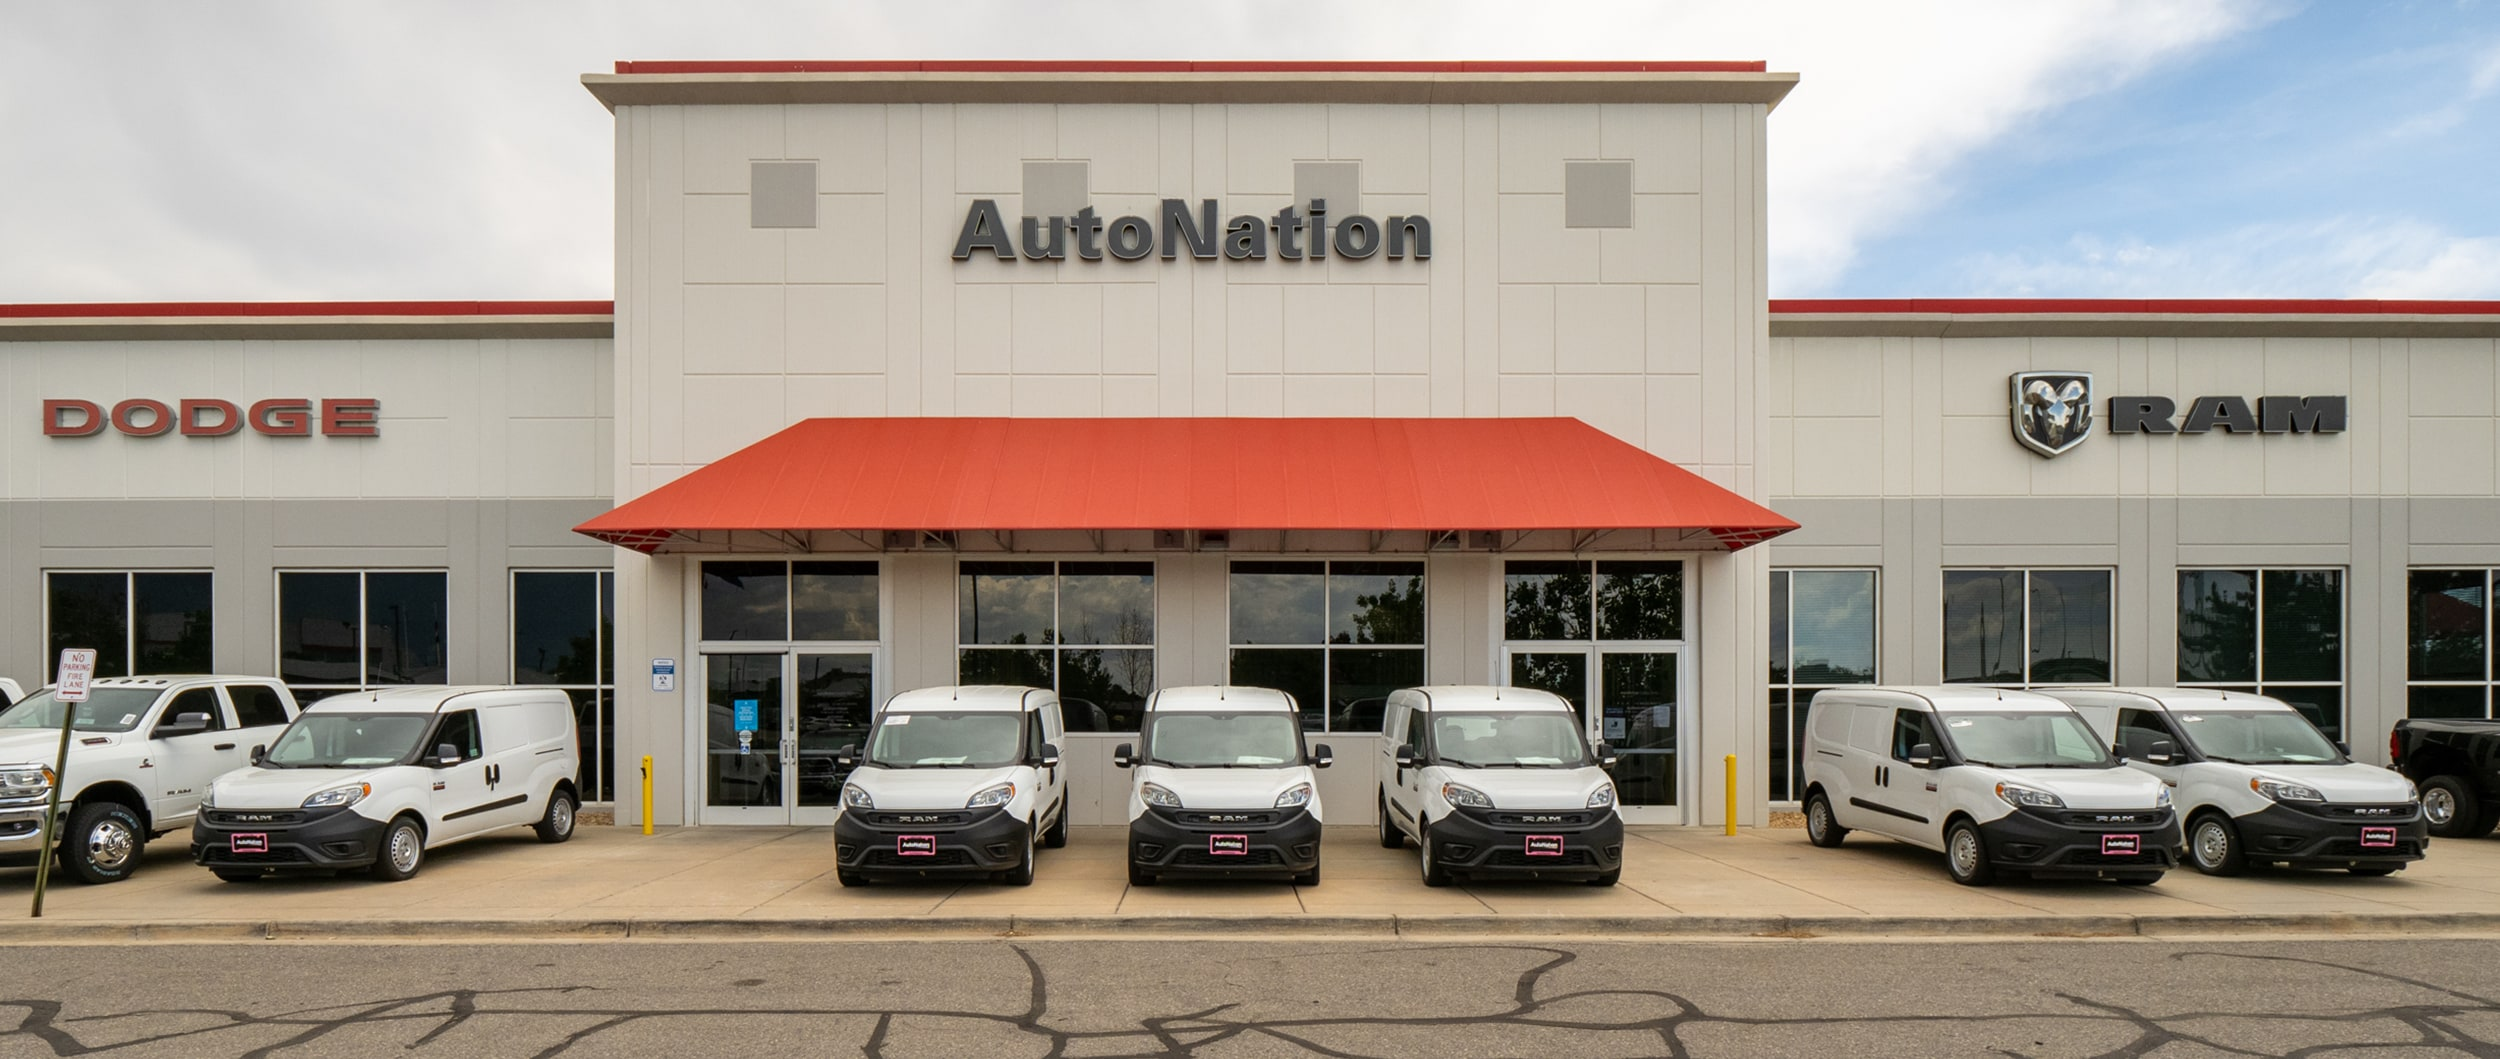 About AutoNation Dodge RAM Arapahoe